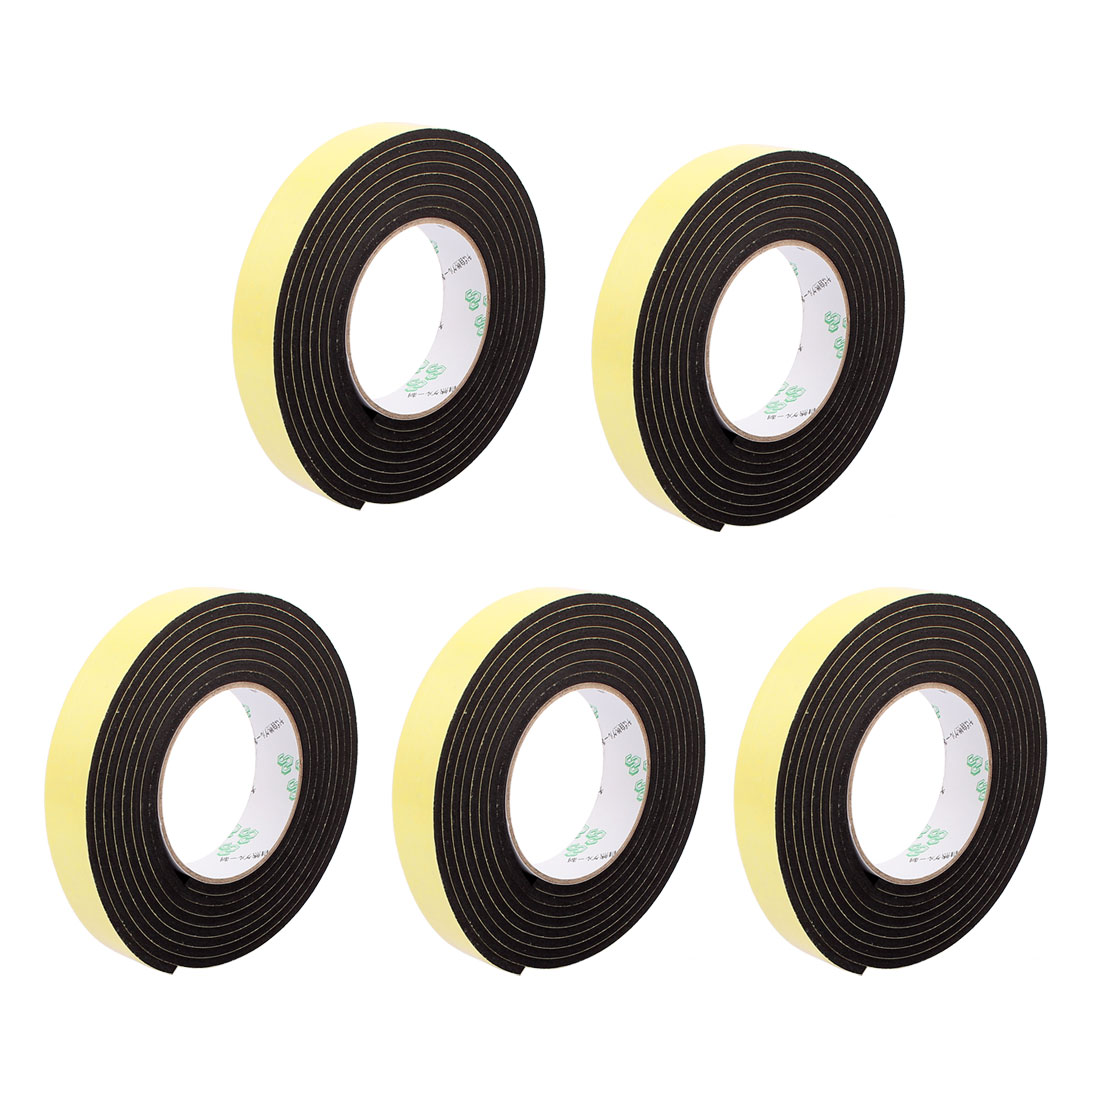 5Pcs 2.5CM Width 3 Meters Length 4MM Thick Single Sided Sealing Shockproof Sponge Tape